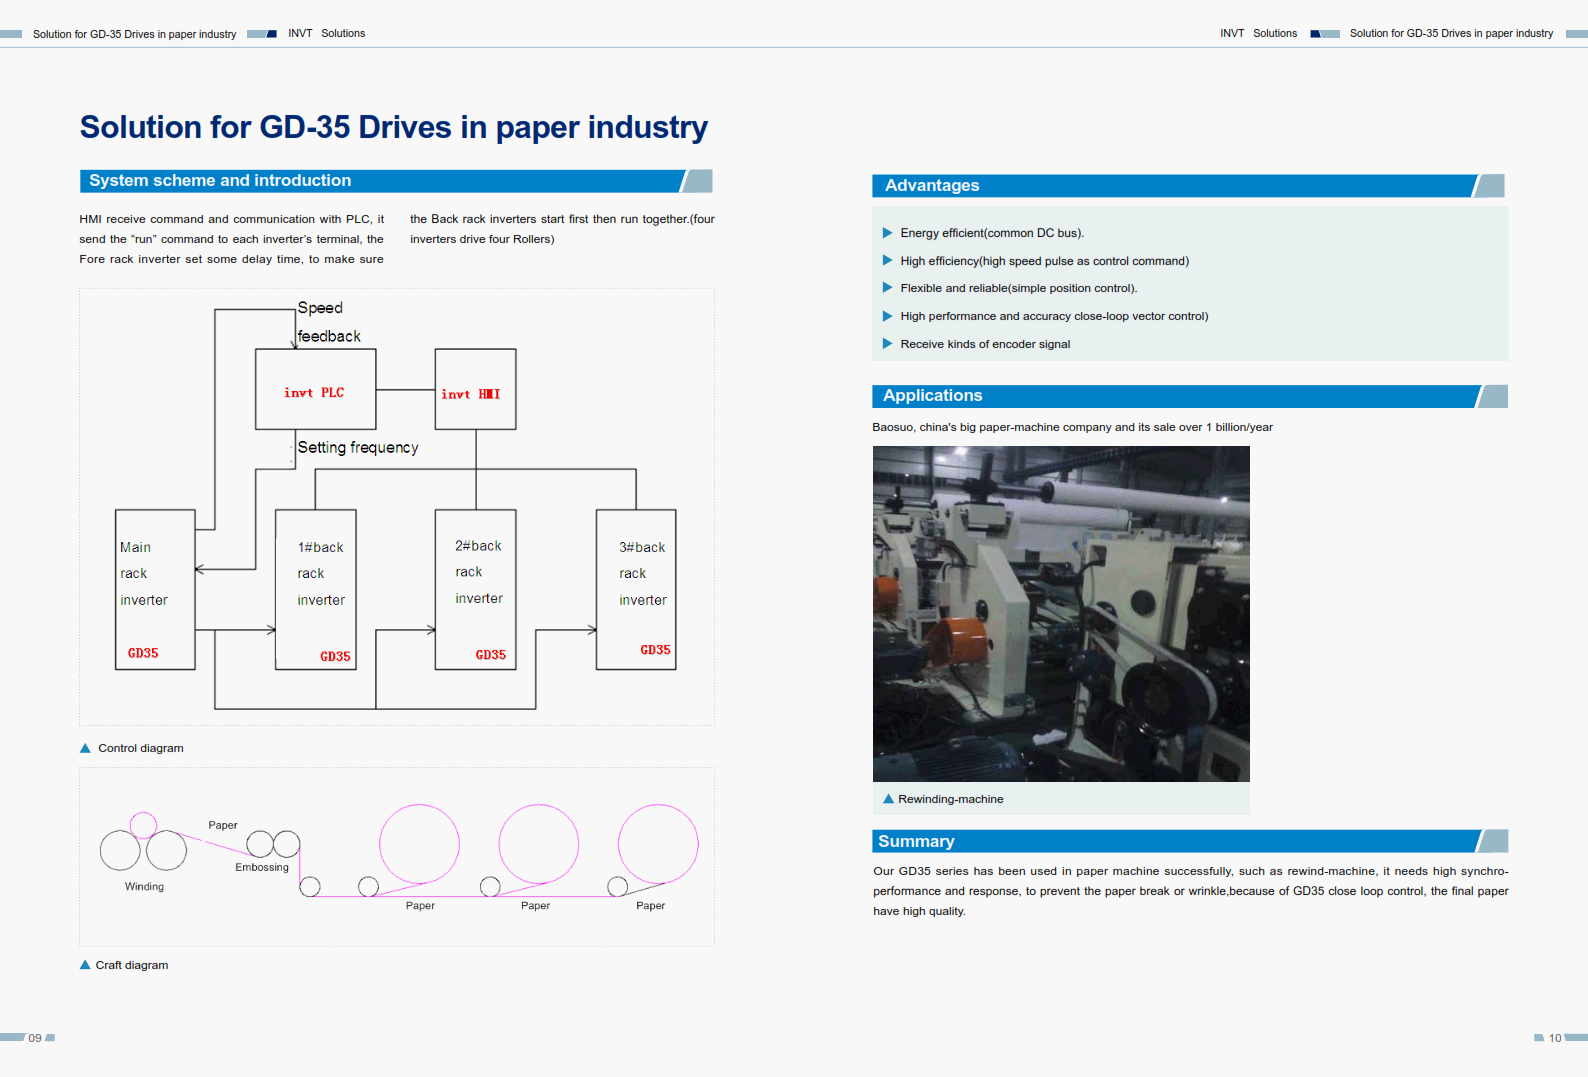 Solution for GD-35 Drives in paper industry